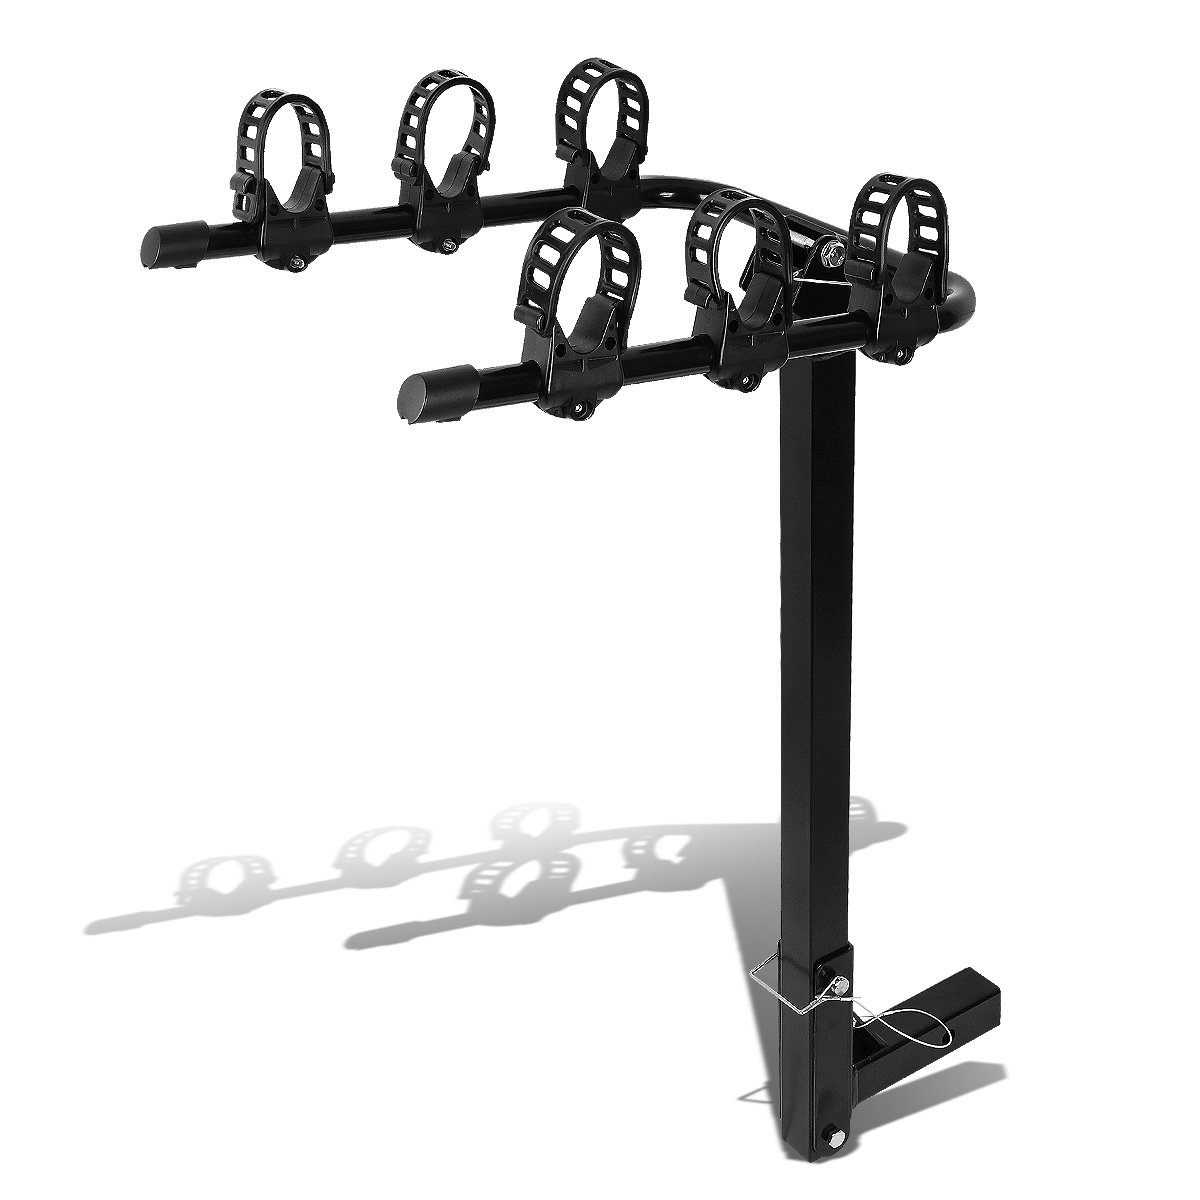 2'Hitch Fold-Up Mount Rear Trailer Bicycle/Bike Rack Carrier Storage (Powdered Coated Black) Auto Dynasty